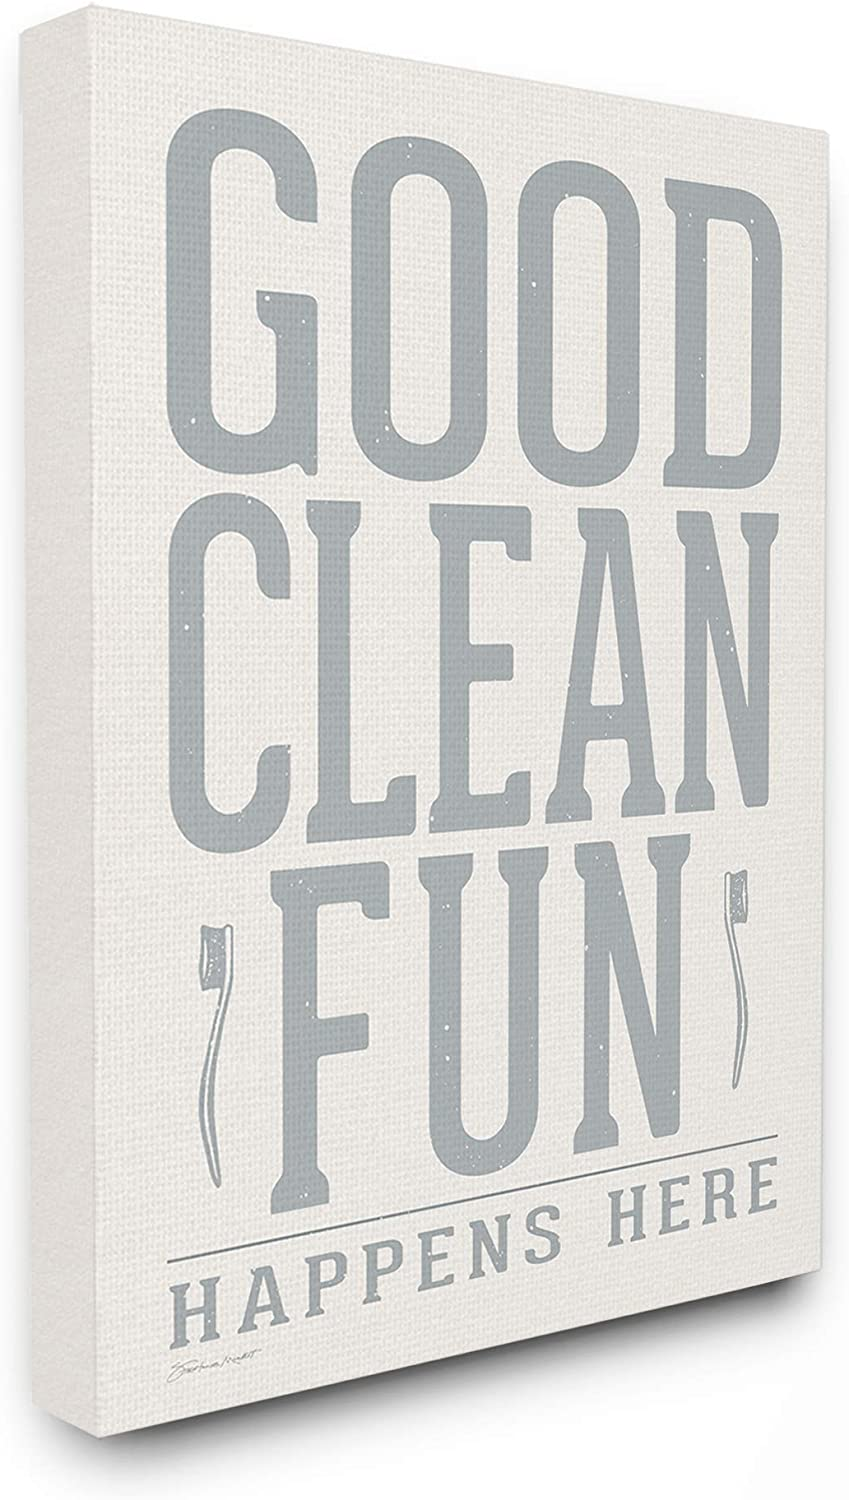 The Stupell Home Décor Grey and White Distressed Good Clean Fun Typography with Toothbrushes Stretched Canvas Wall Art, 16x20, Multicolor